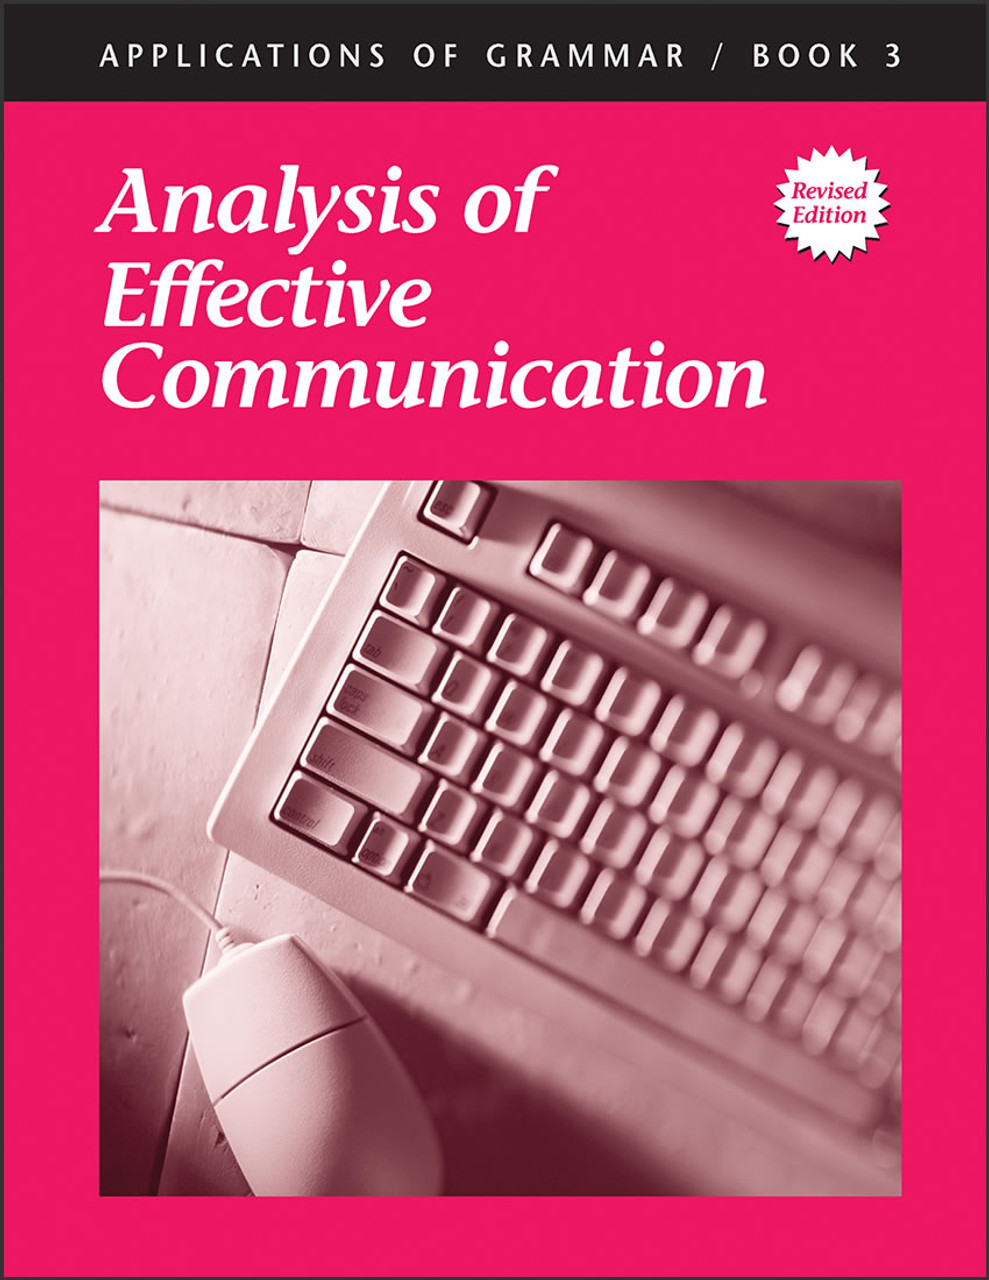 Applications of Grammar Book 3: Analysis of Effective Communication